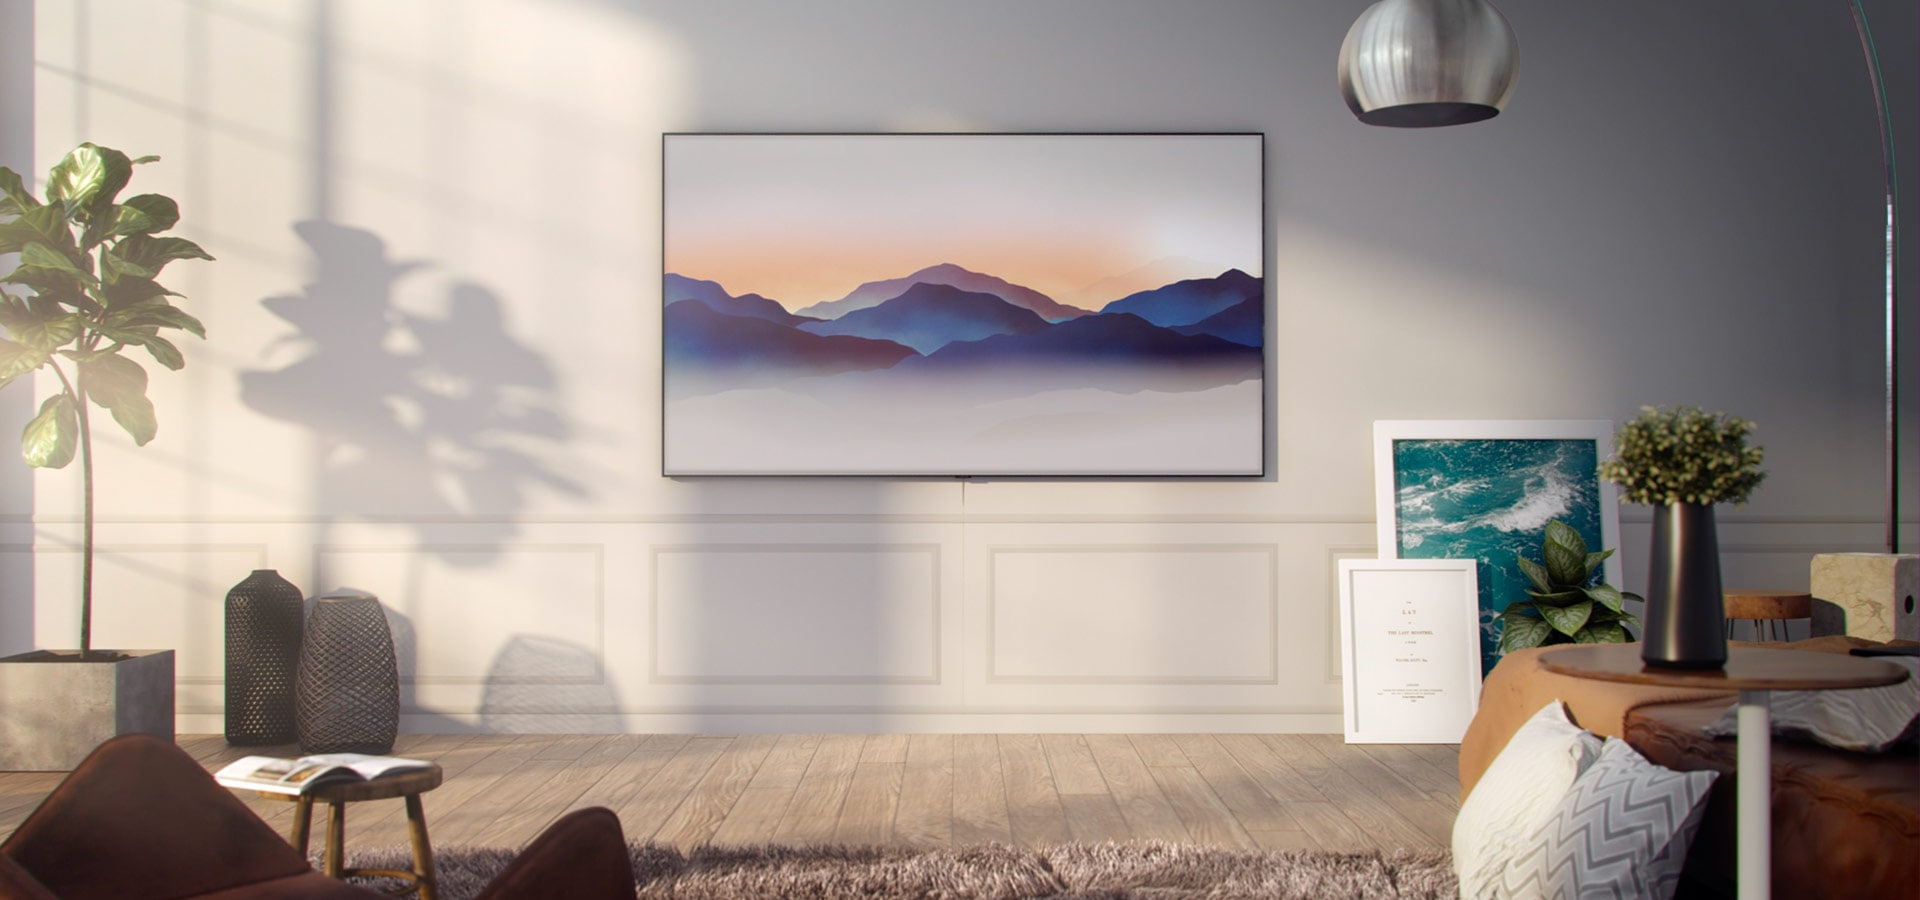 Samsung 2018 new QLED TV Key Visual video thumbnail.